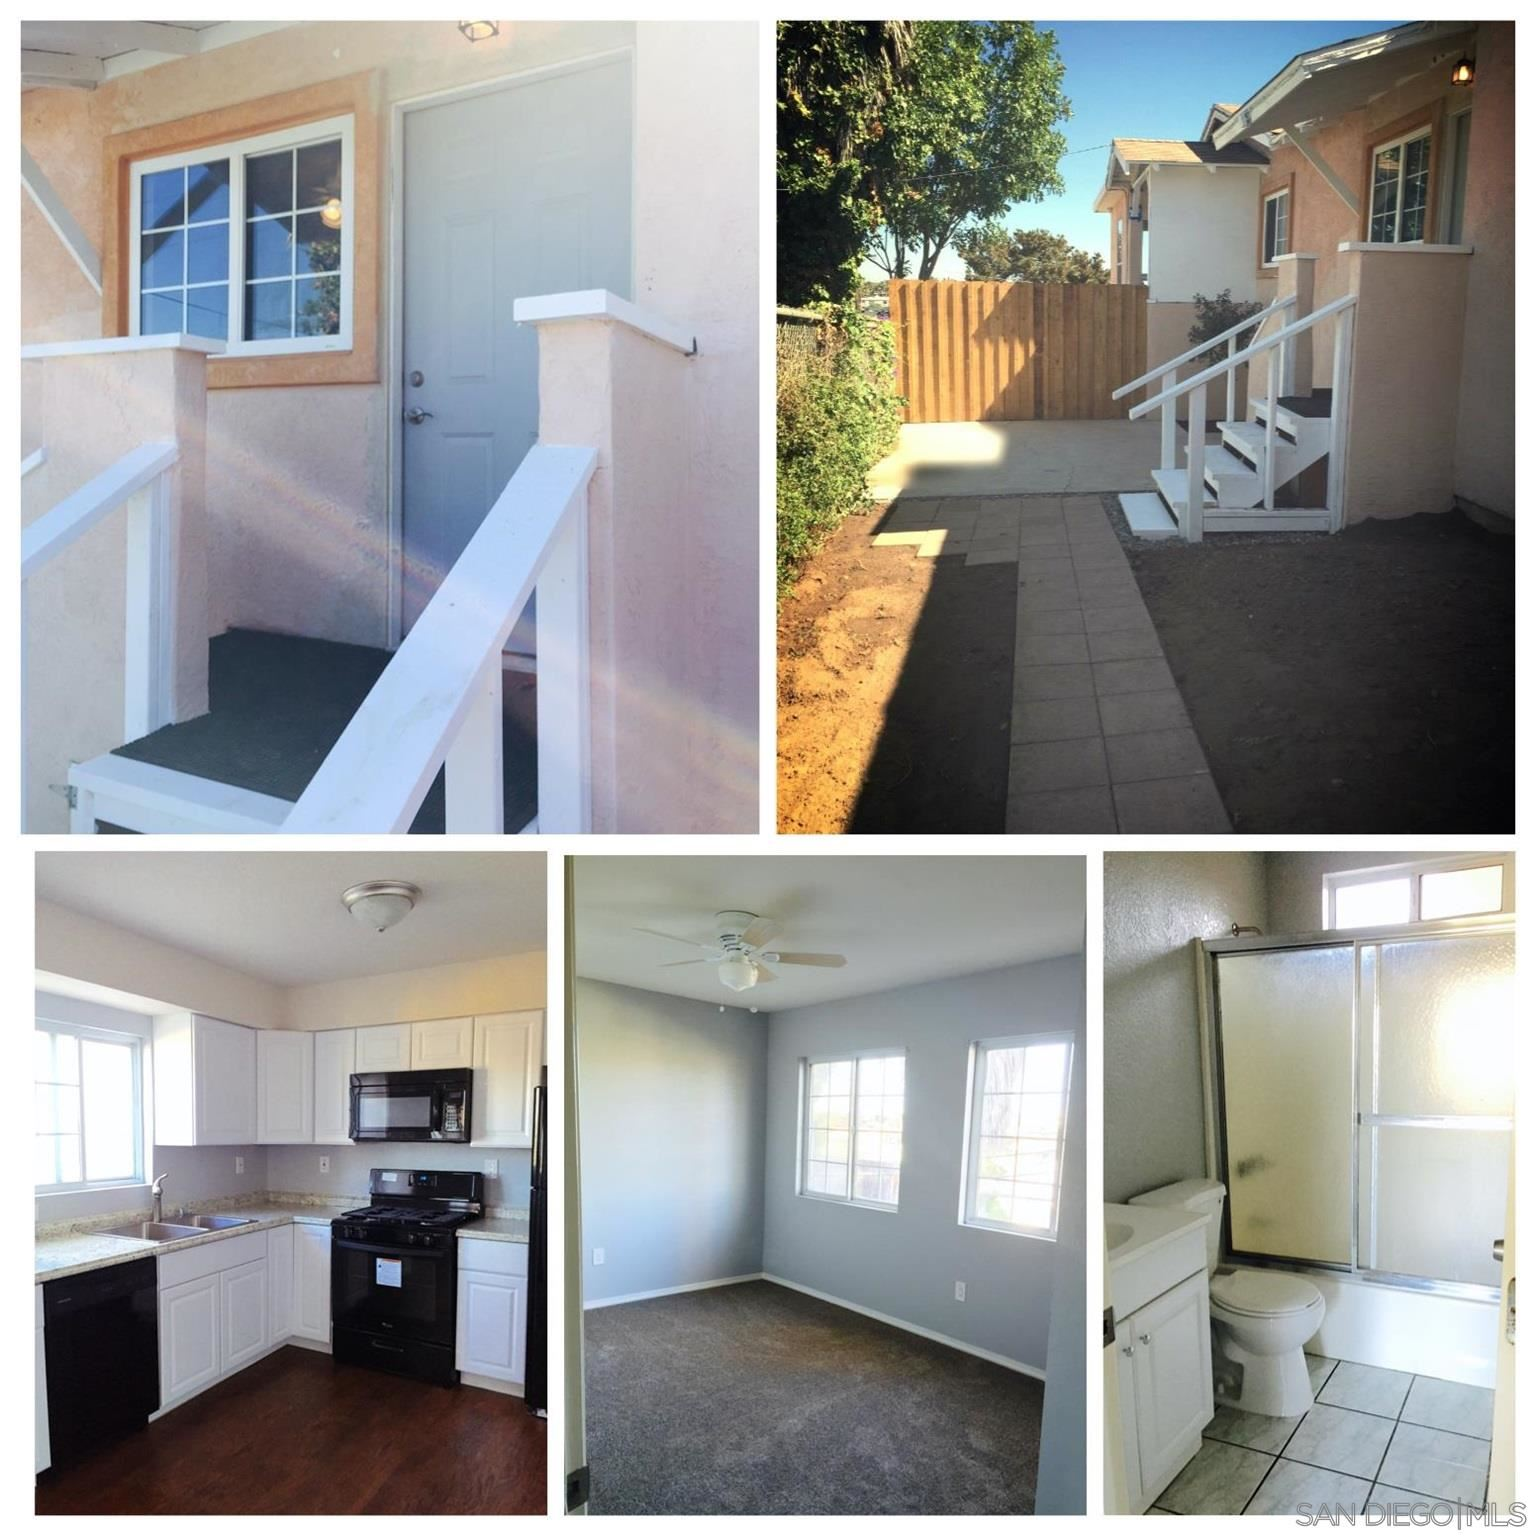 Photo of 1006 Palm Ave, National City, CA 91950 (MLS # 210020393)